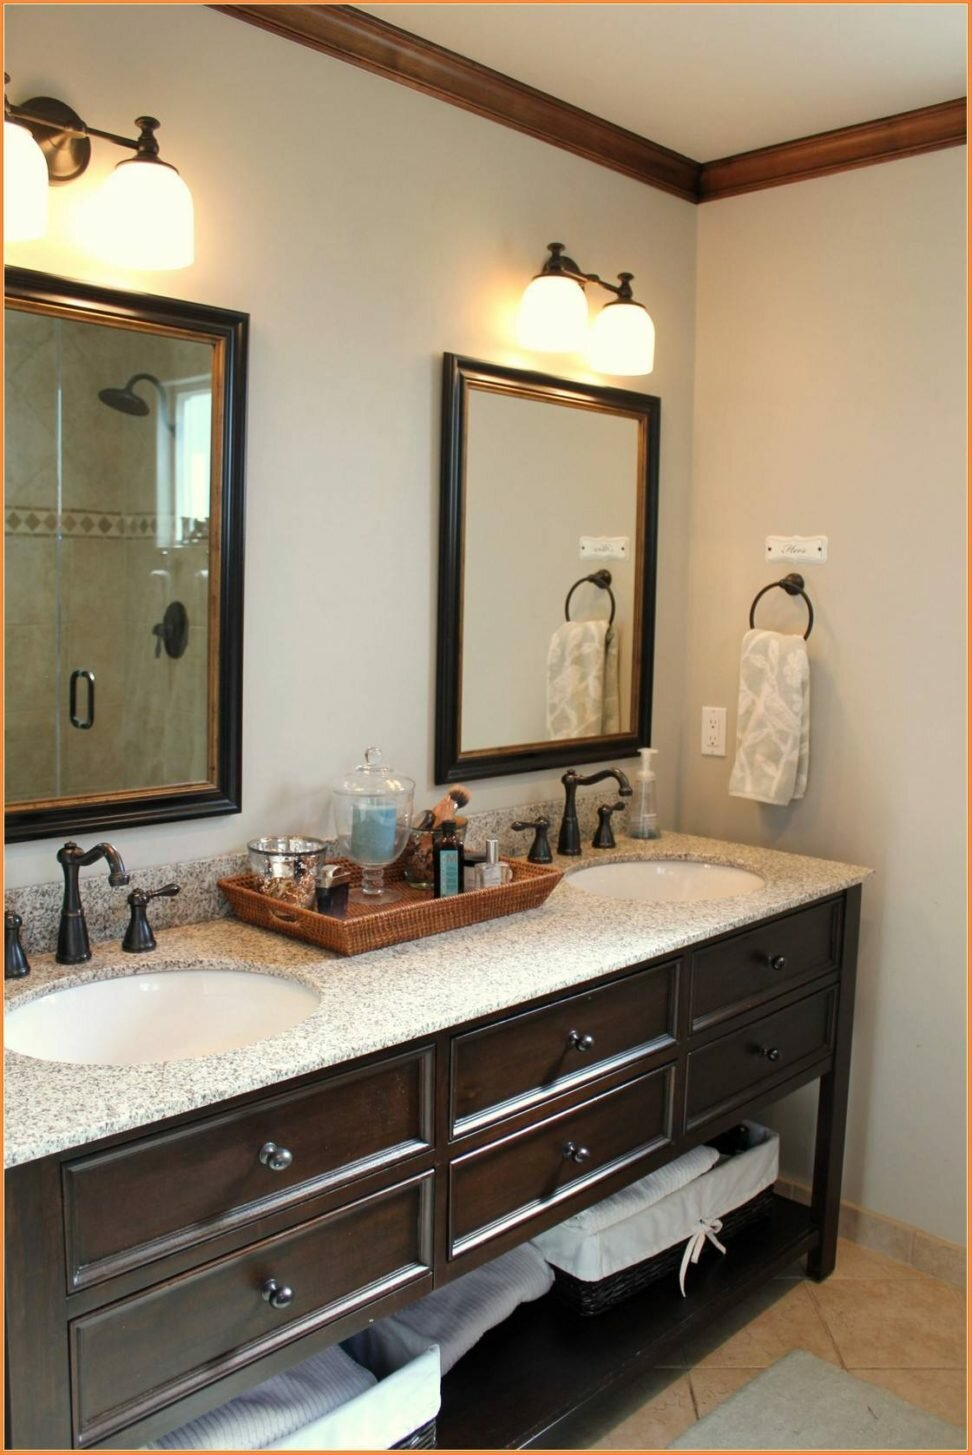 Pottery Barn Vanity for Bathroom Cabinet Design Ideas: Crate And Barrel Bathroom Vanity | Pottery Barn Vanity | Restoration Hardware Sink Vanity